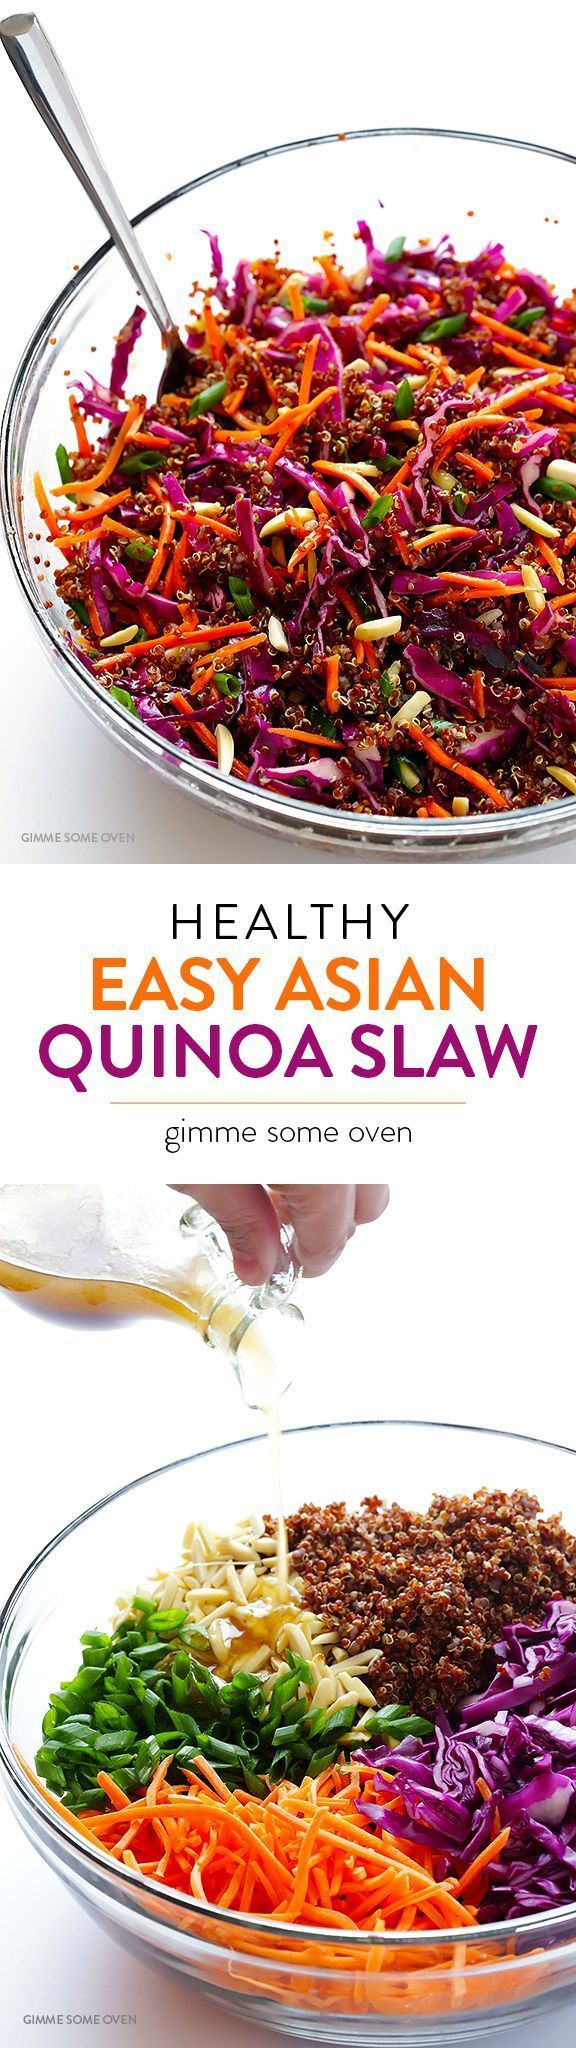 Easy Asian Quinoa Salad -- quick and easy to make, full of great flavor, and naturally vegan and gluten-free!